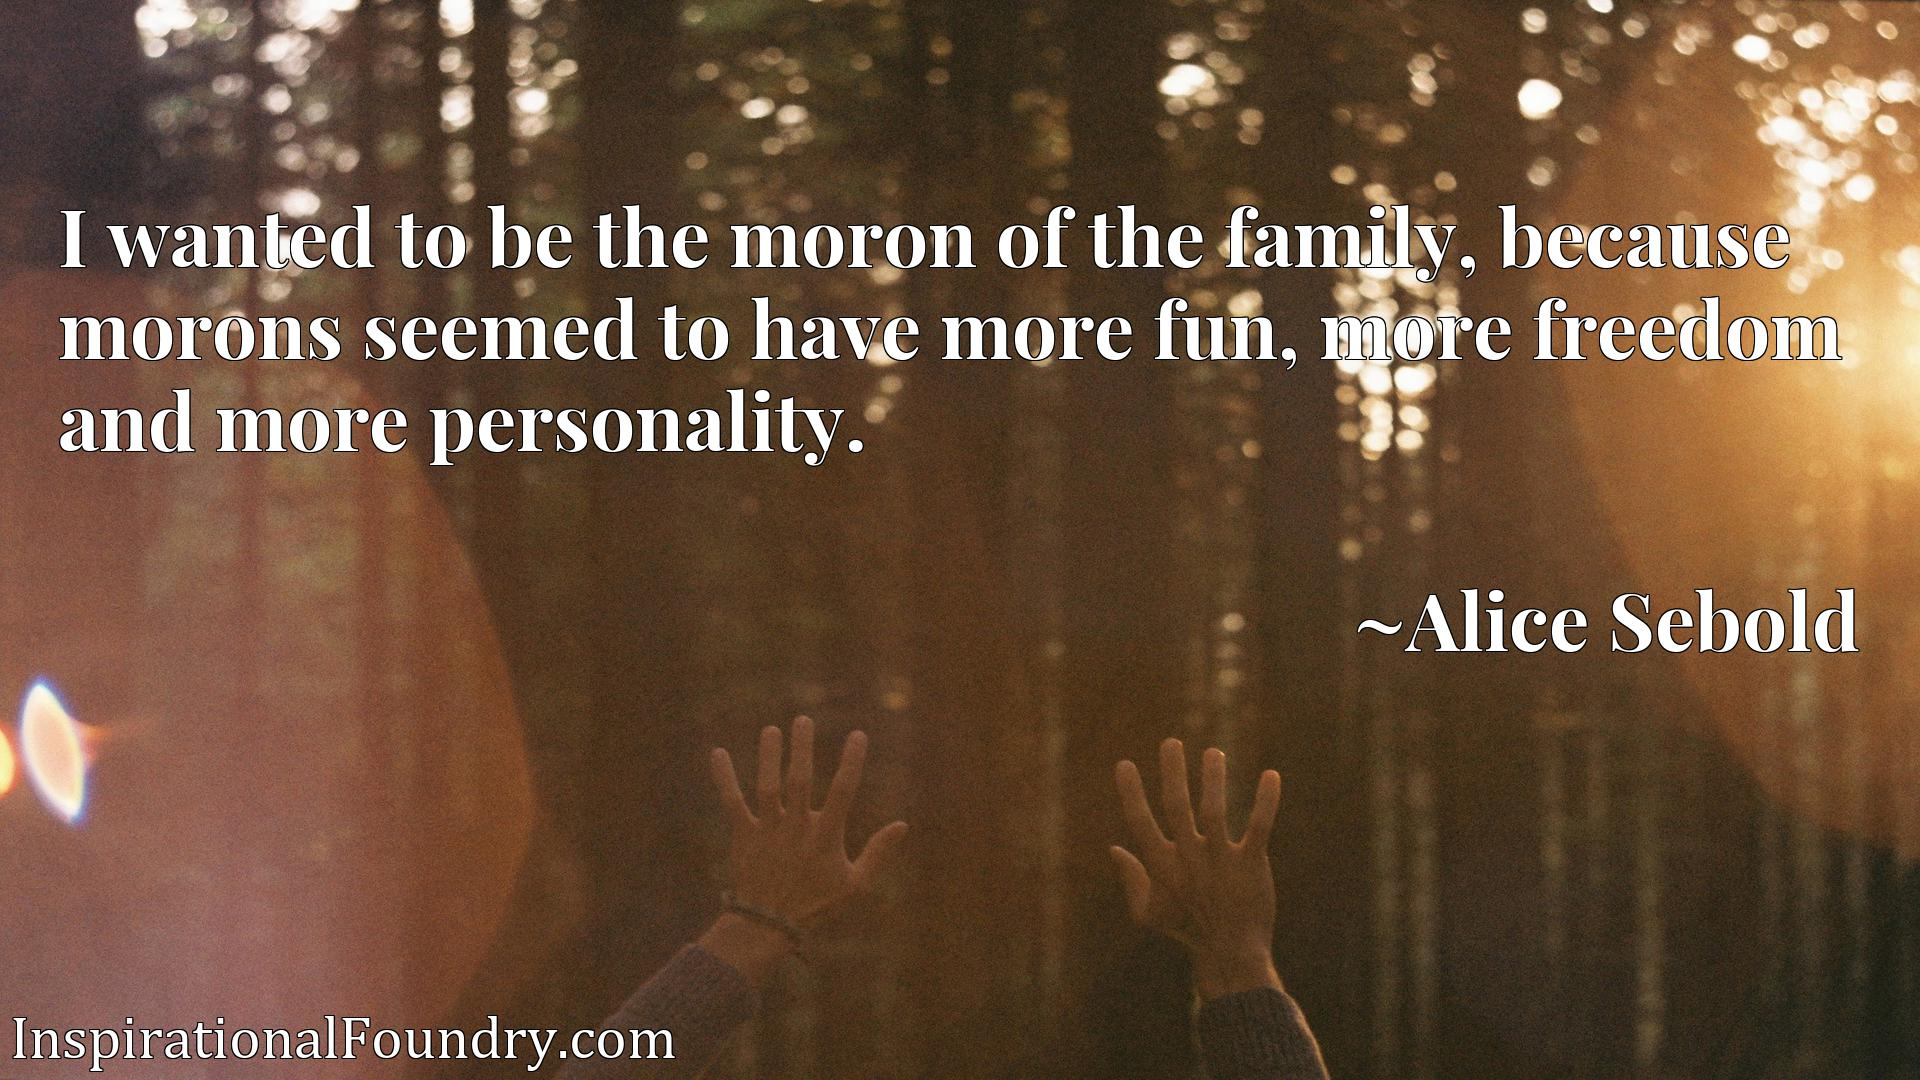 I wanted to be the moron of the family, because morons seemed to have more fun, more freedom and more personality.